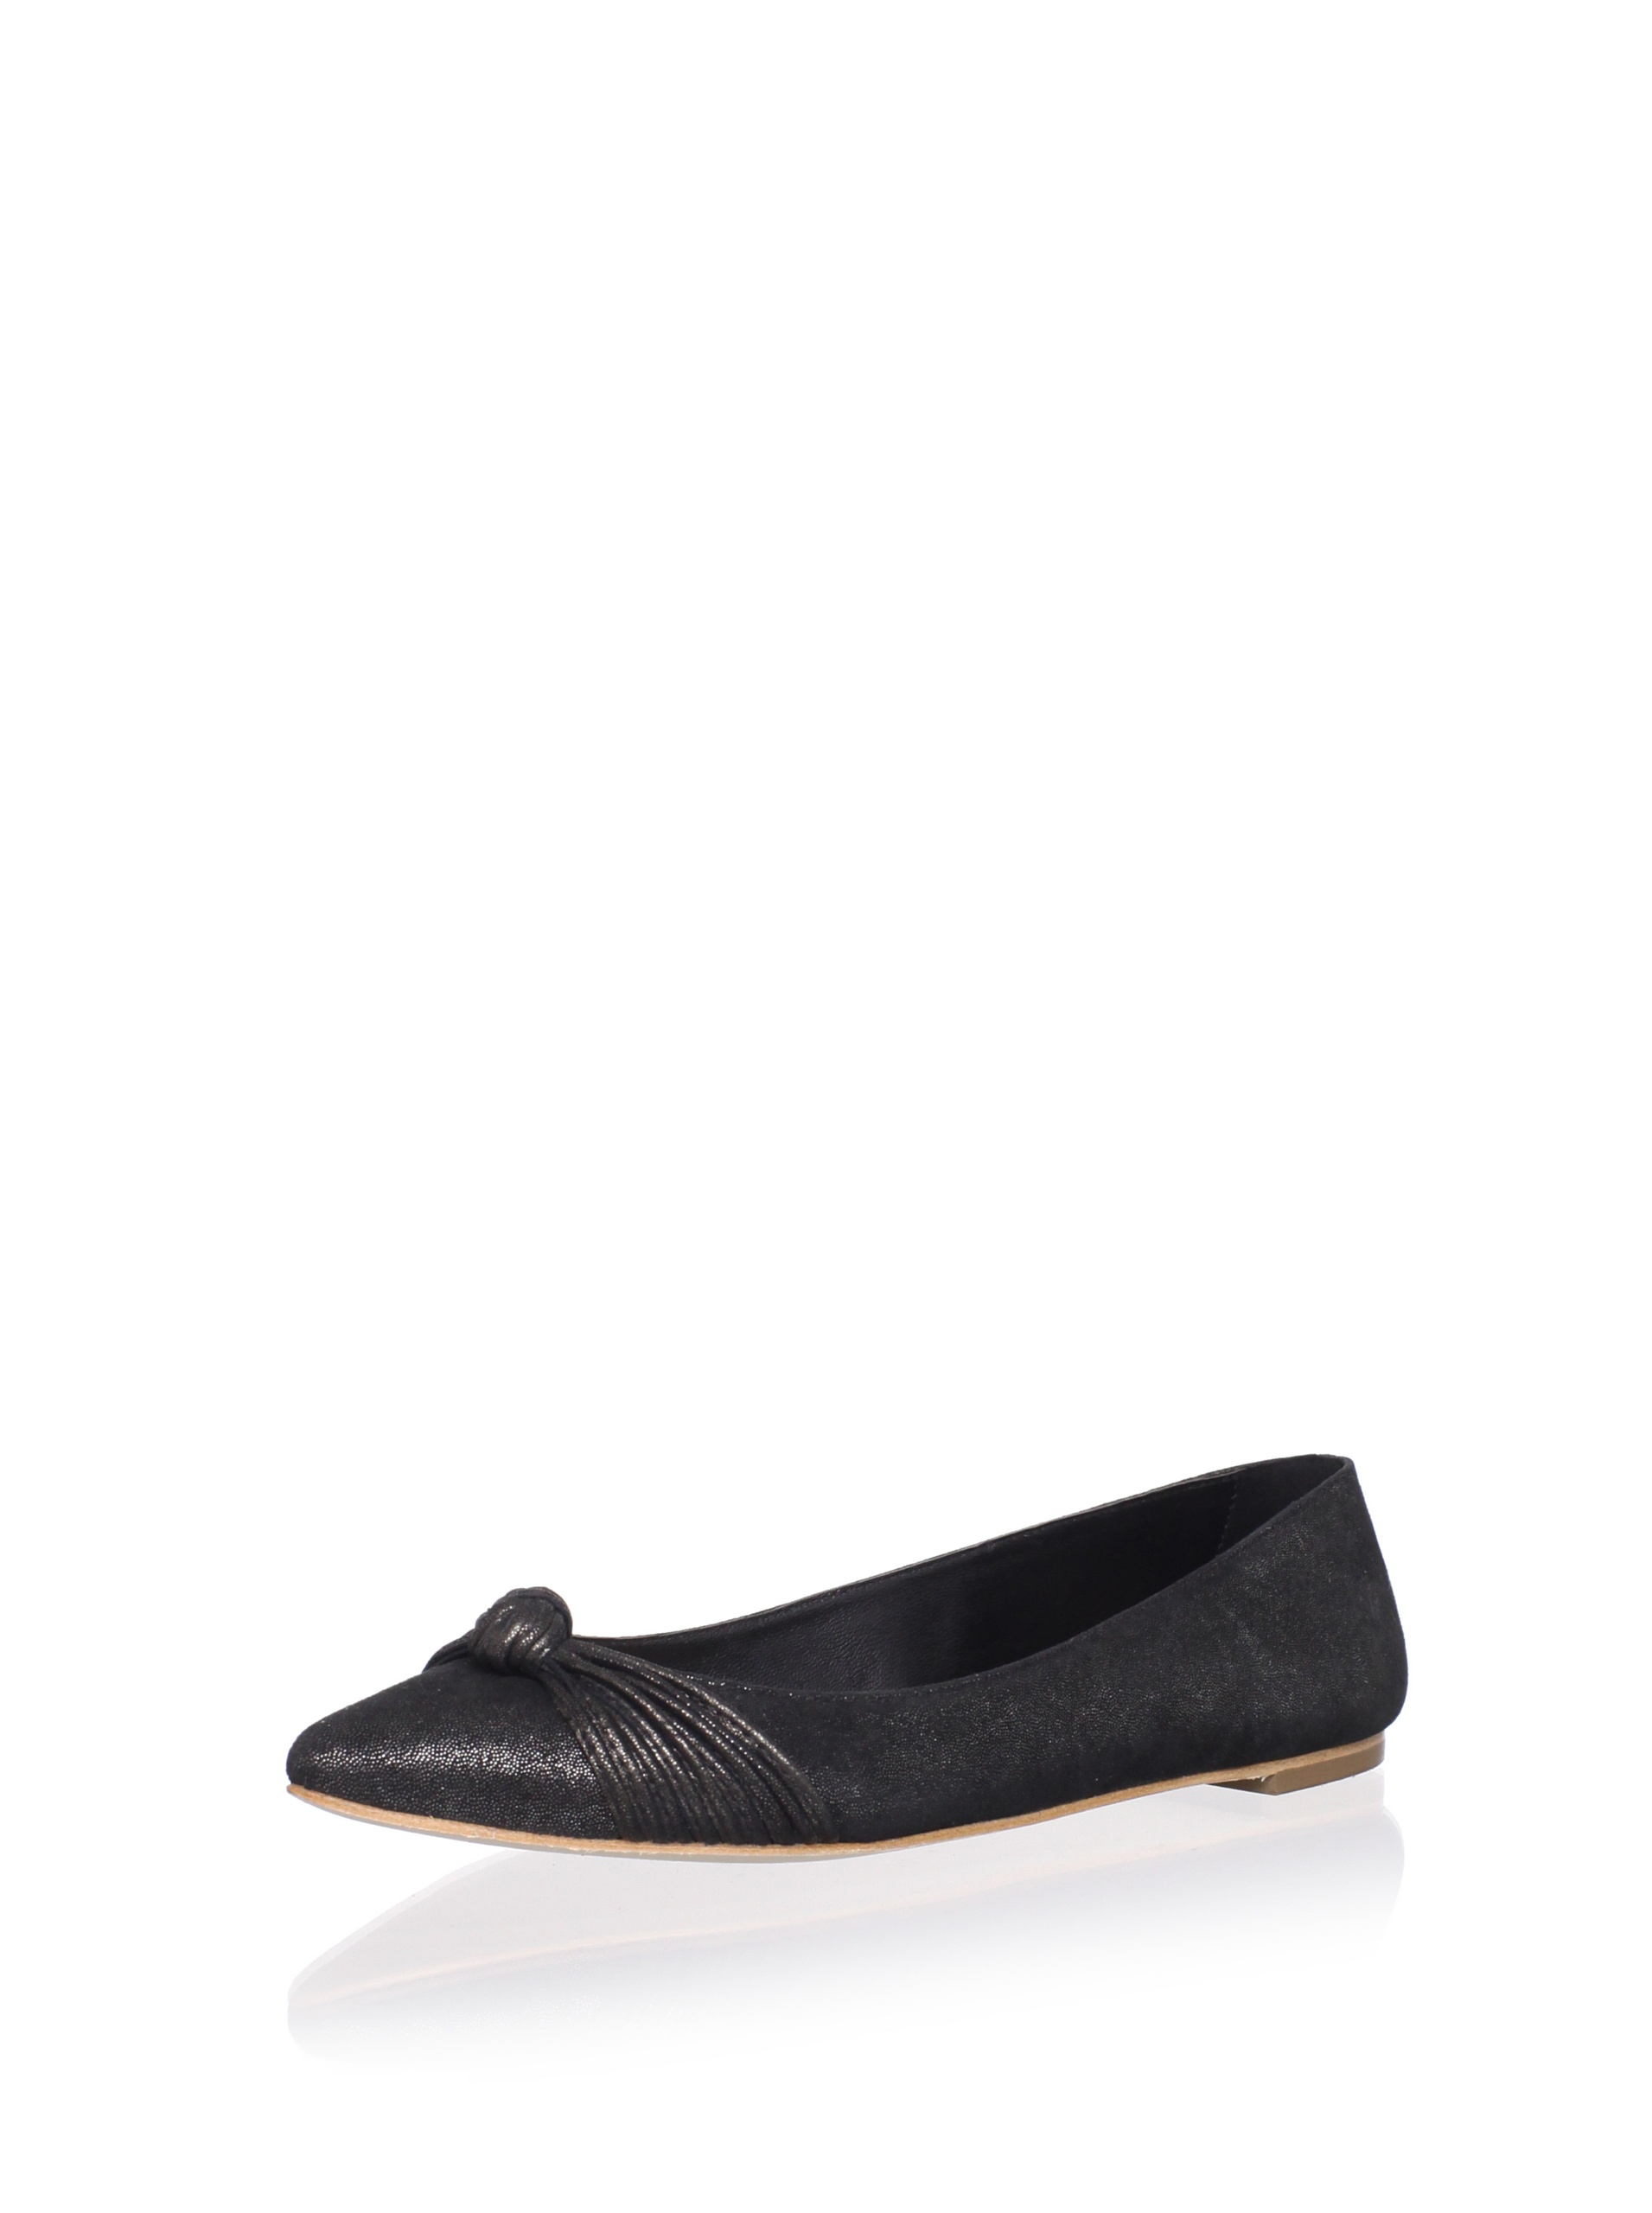 Loeffler Randall Women's Willow Flat with Mignon Knot (Black)